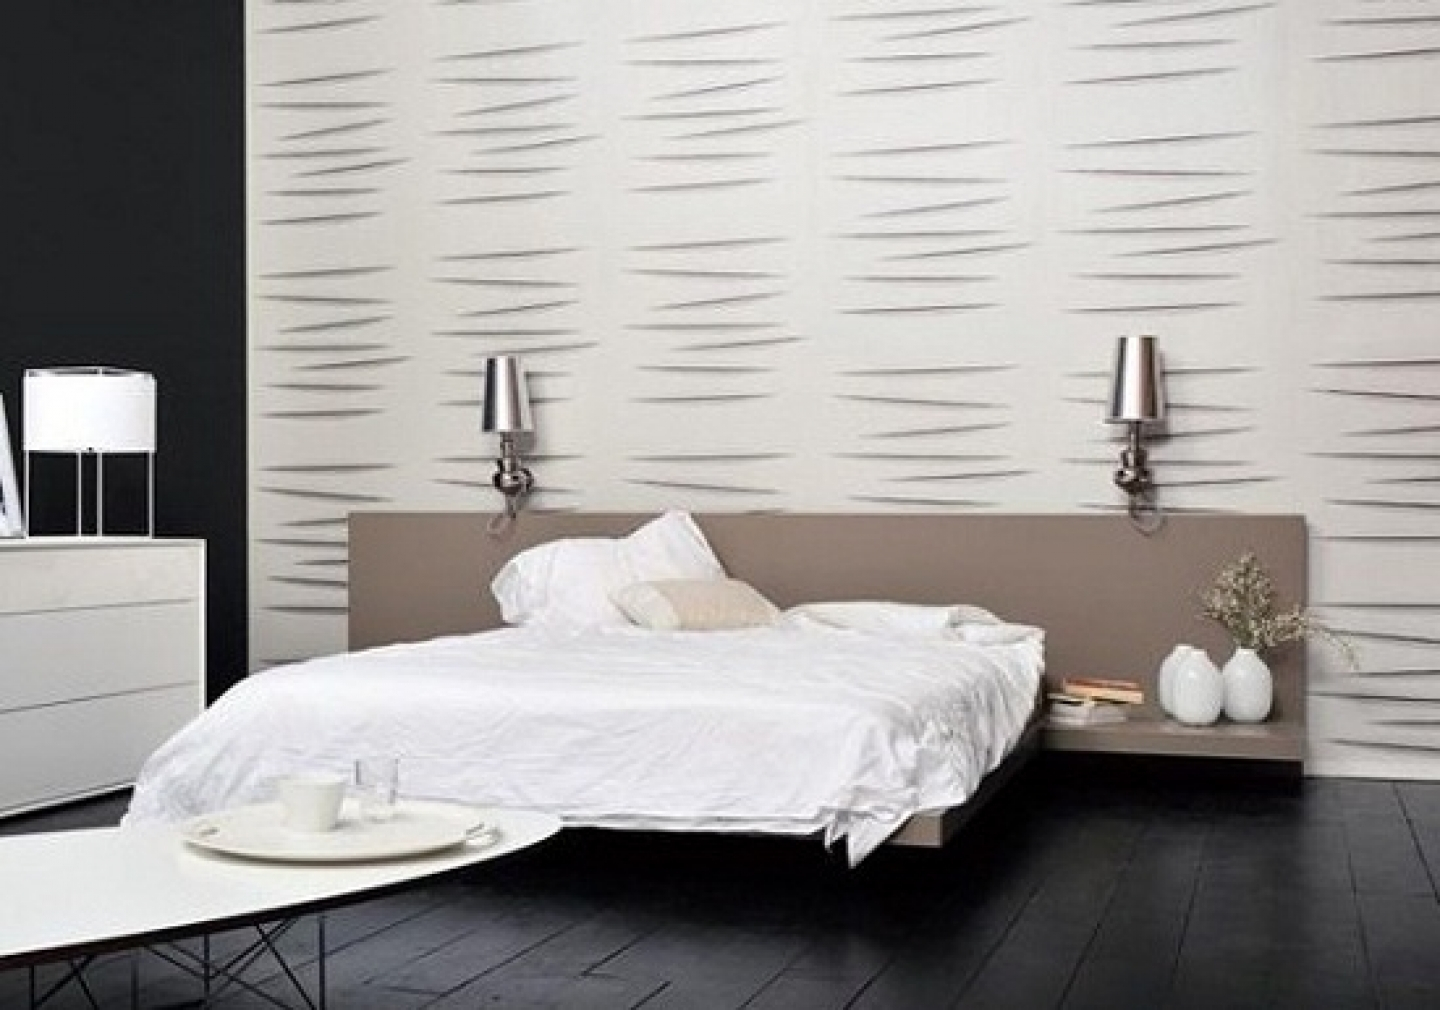 Modern Wallpaper For Bedroom Wallpapersafari pertaining to Modern Wallpaper For Bedroom